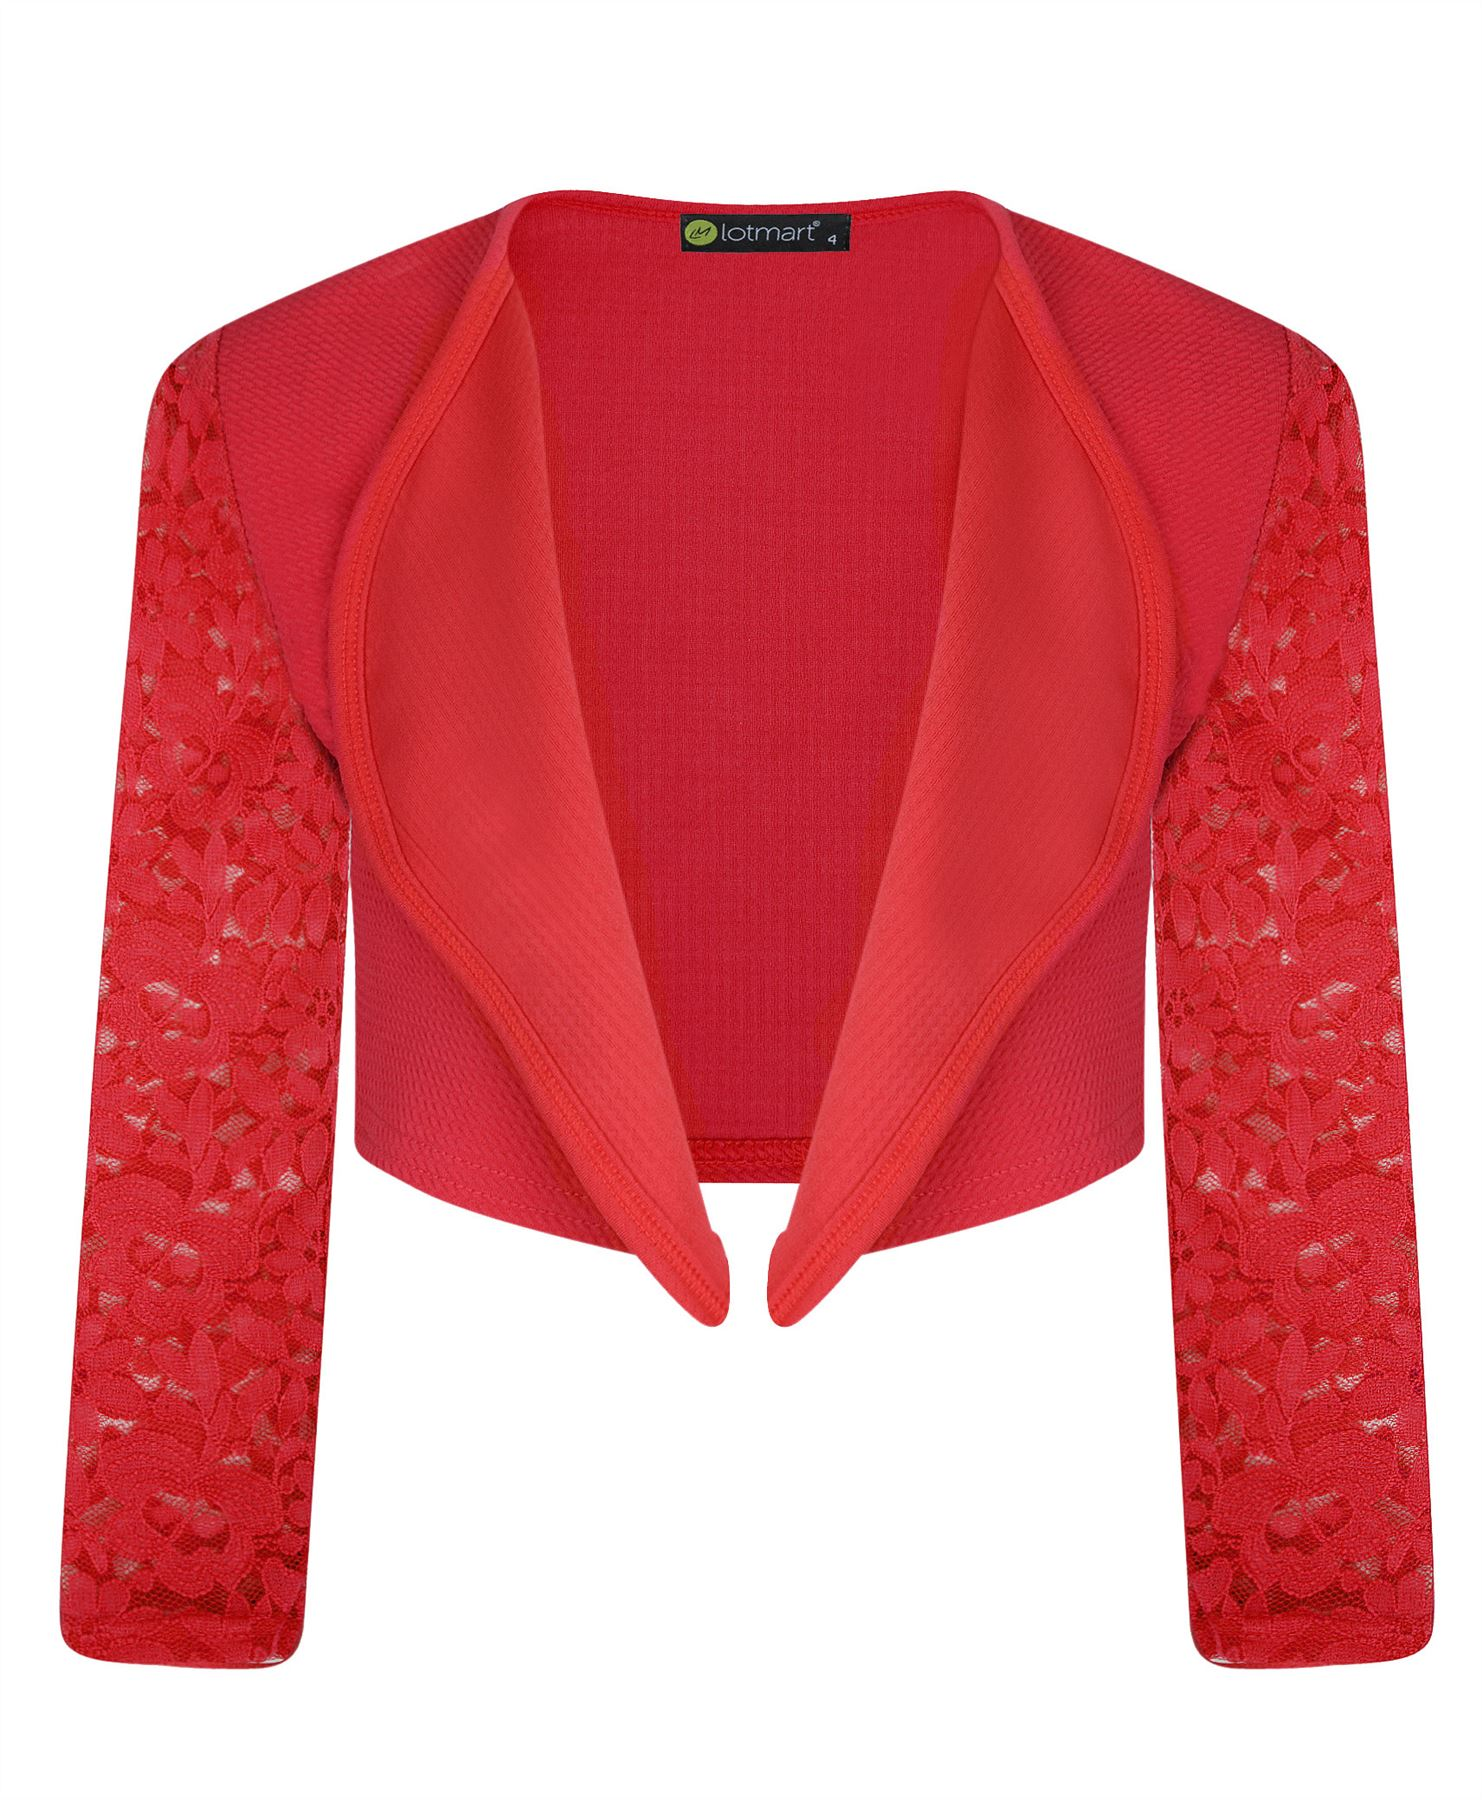 Find great deals on eBay for childrens bolero jacket. Shop with confidence.